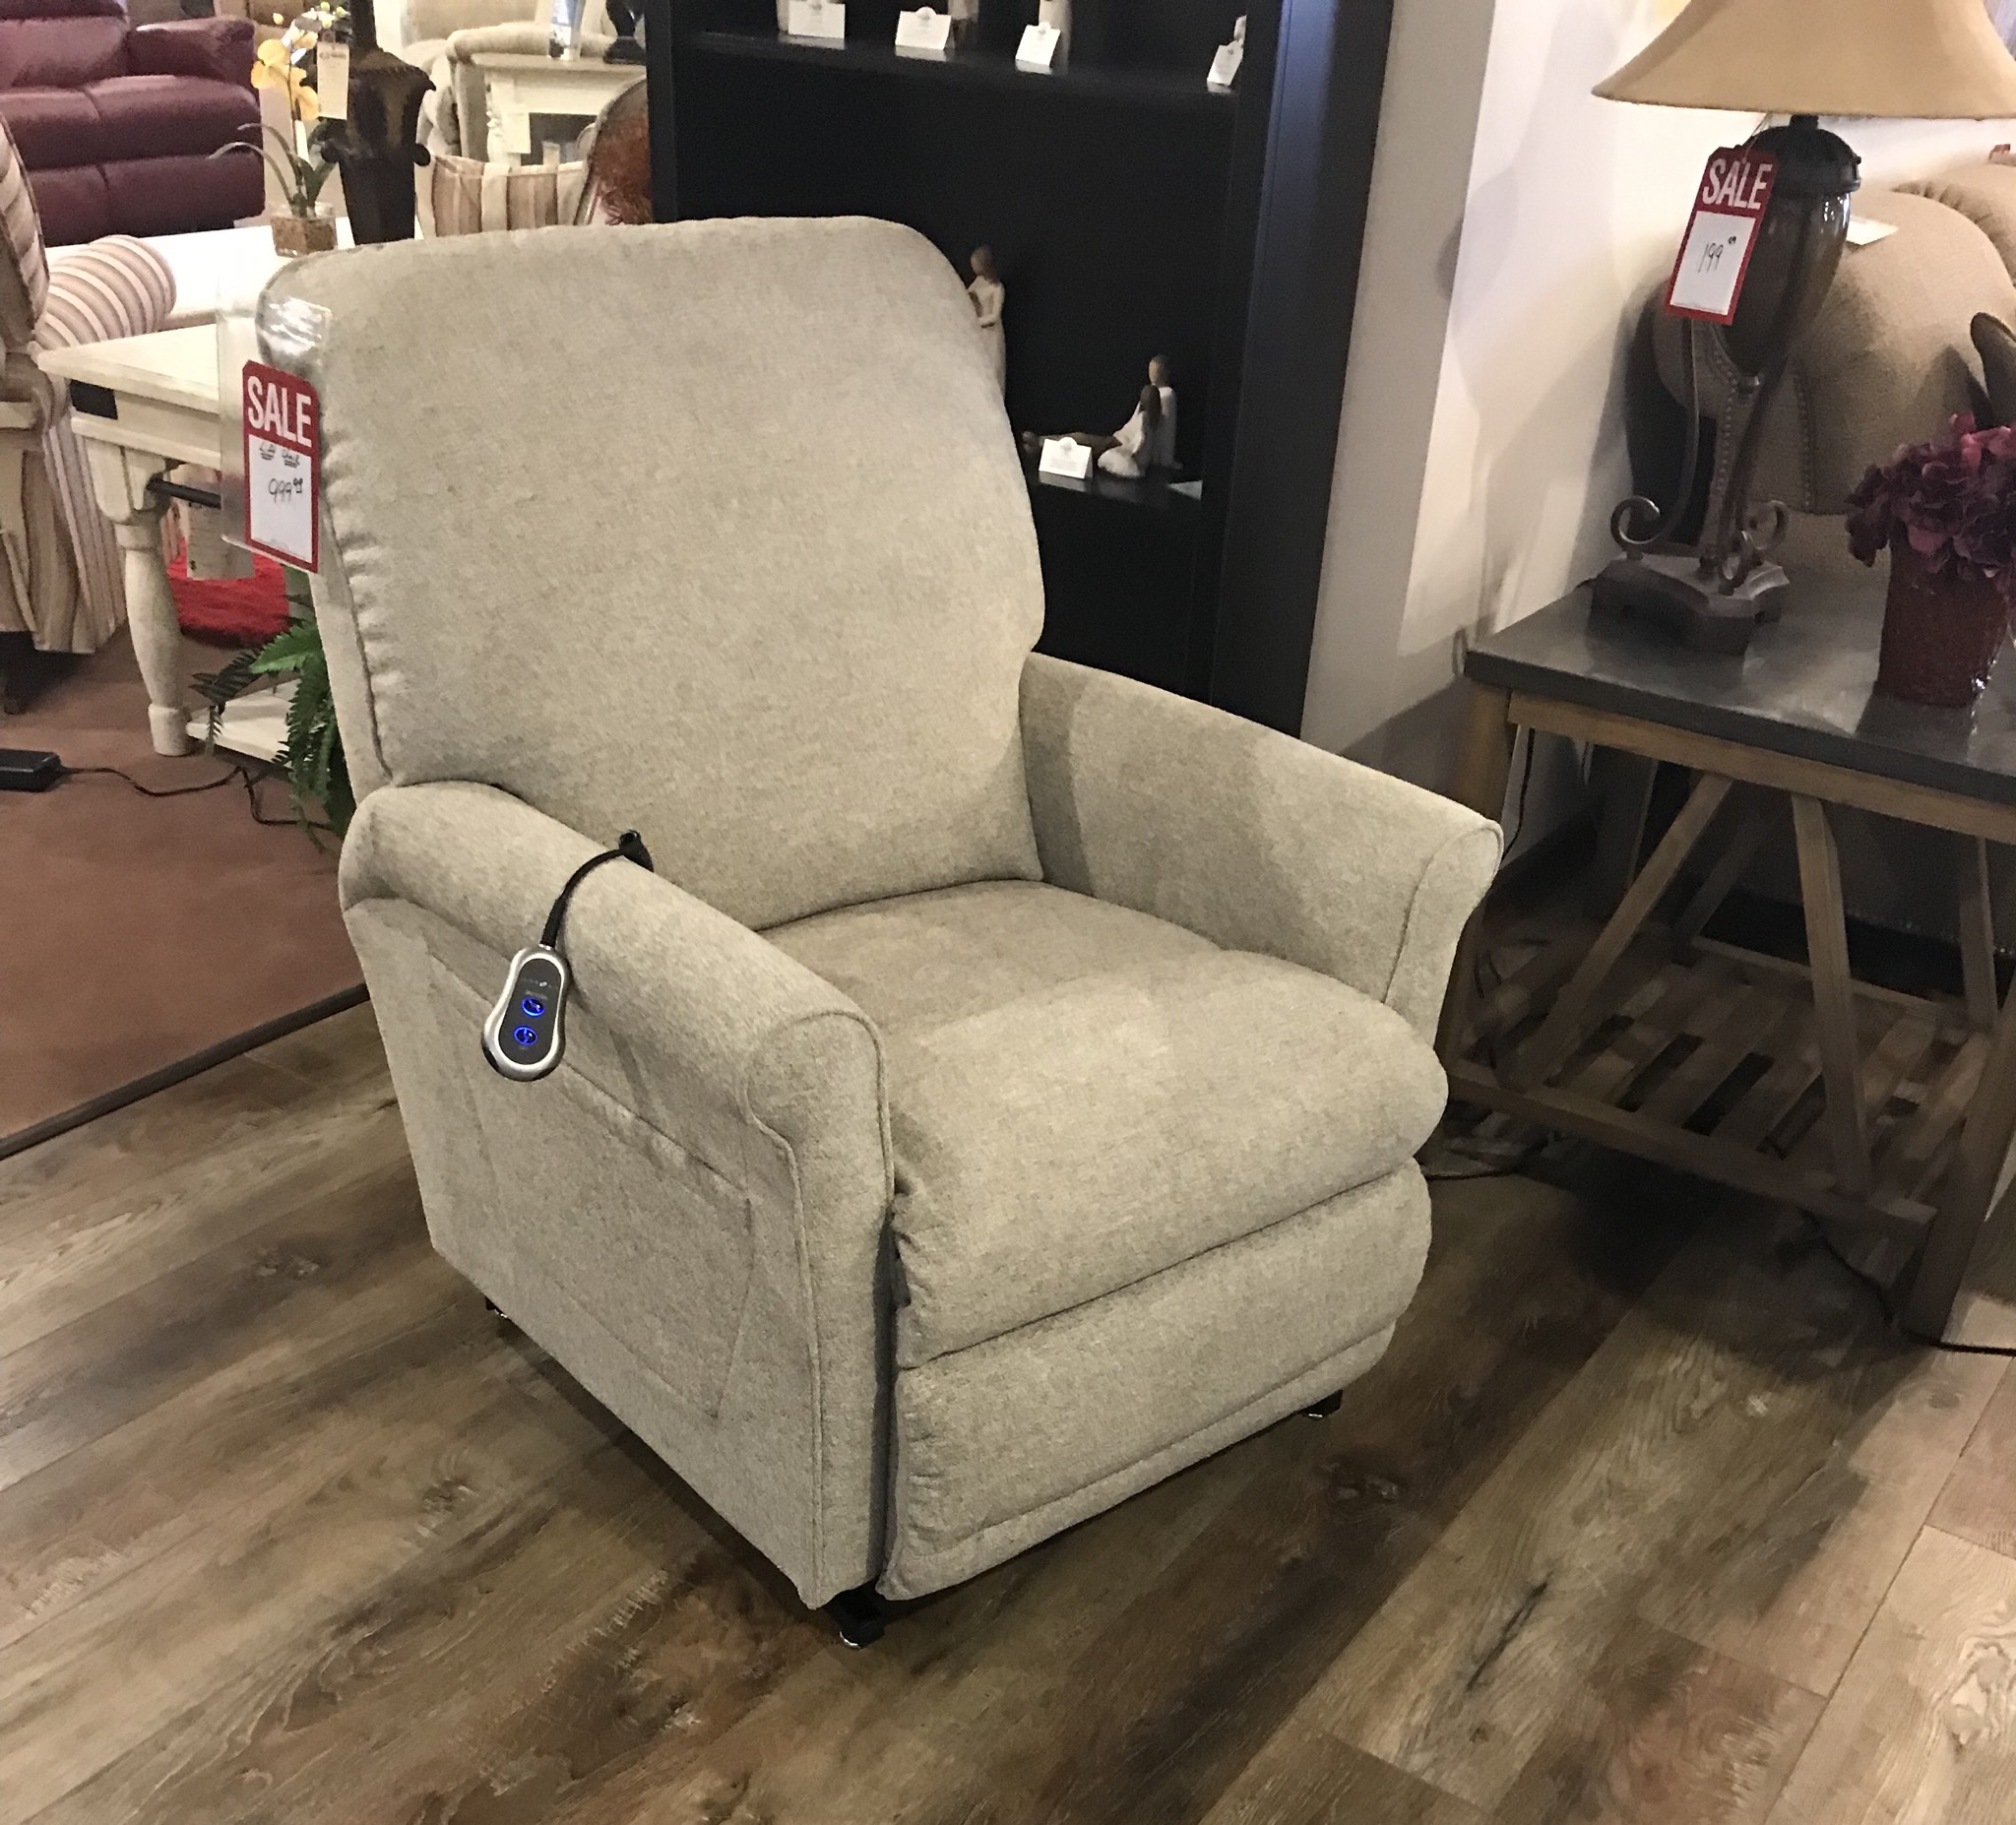 La-Z-Boy Lift chair